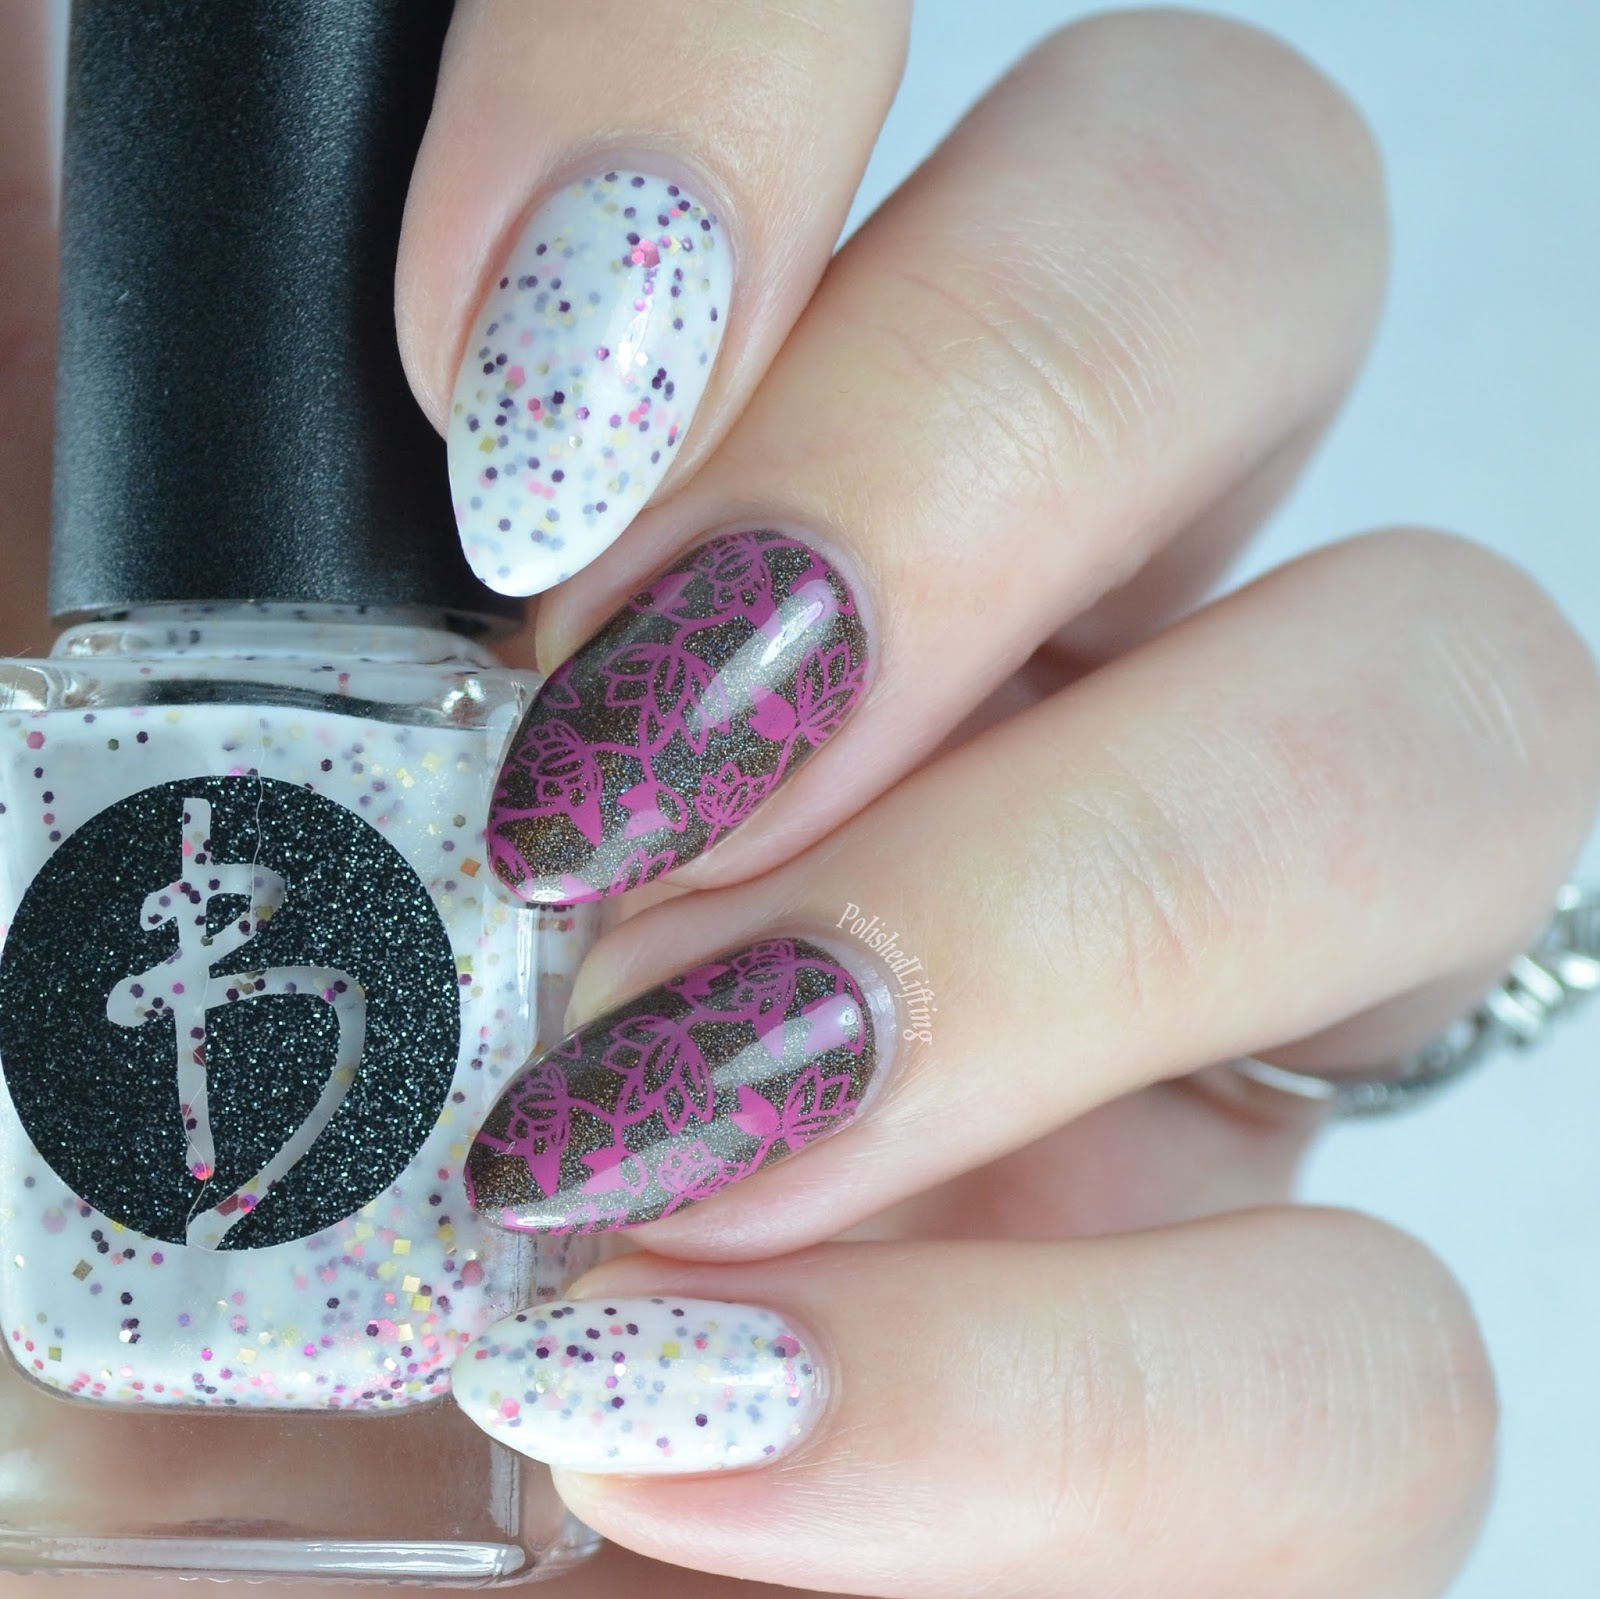 Polished lifting lotus flower mani featuring bliss polish and white crelly polish with chocolate holographic accent and lotus flower stamping izmirmasajfo